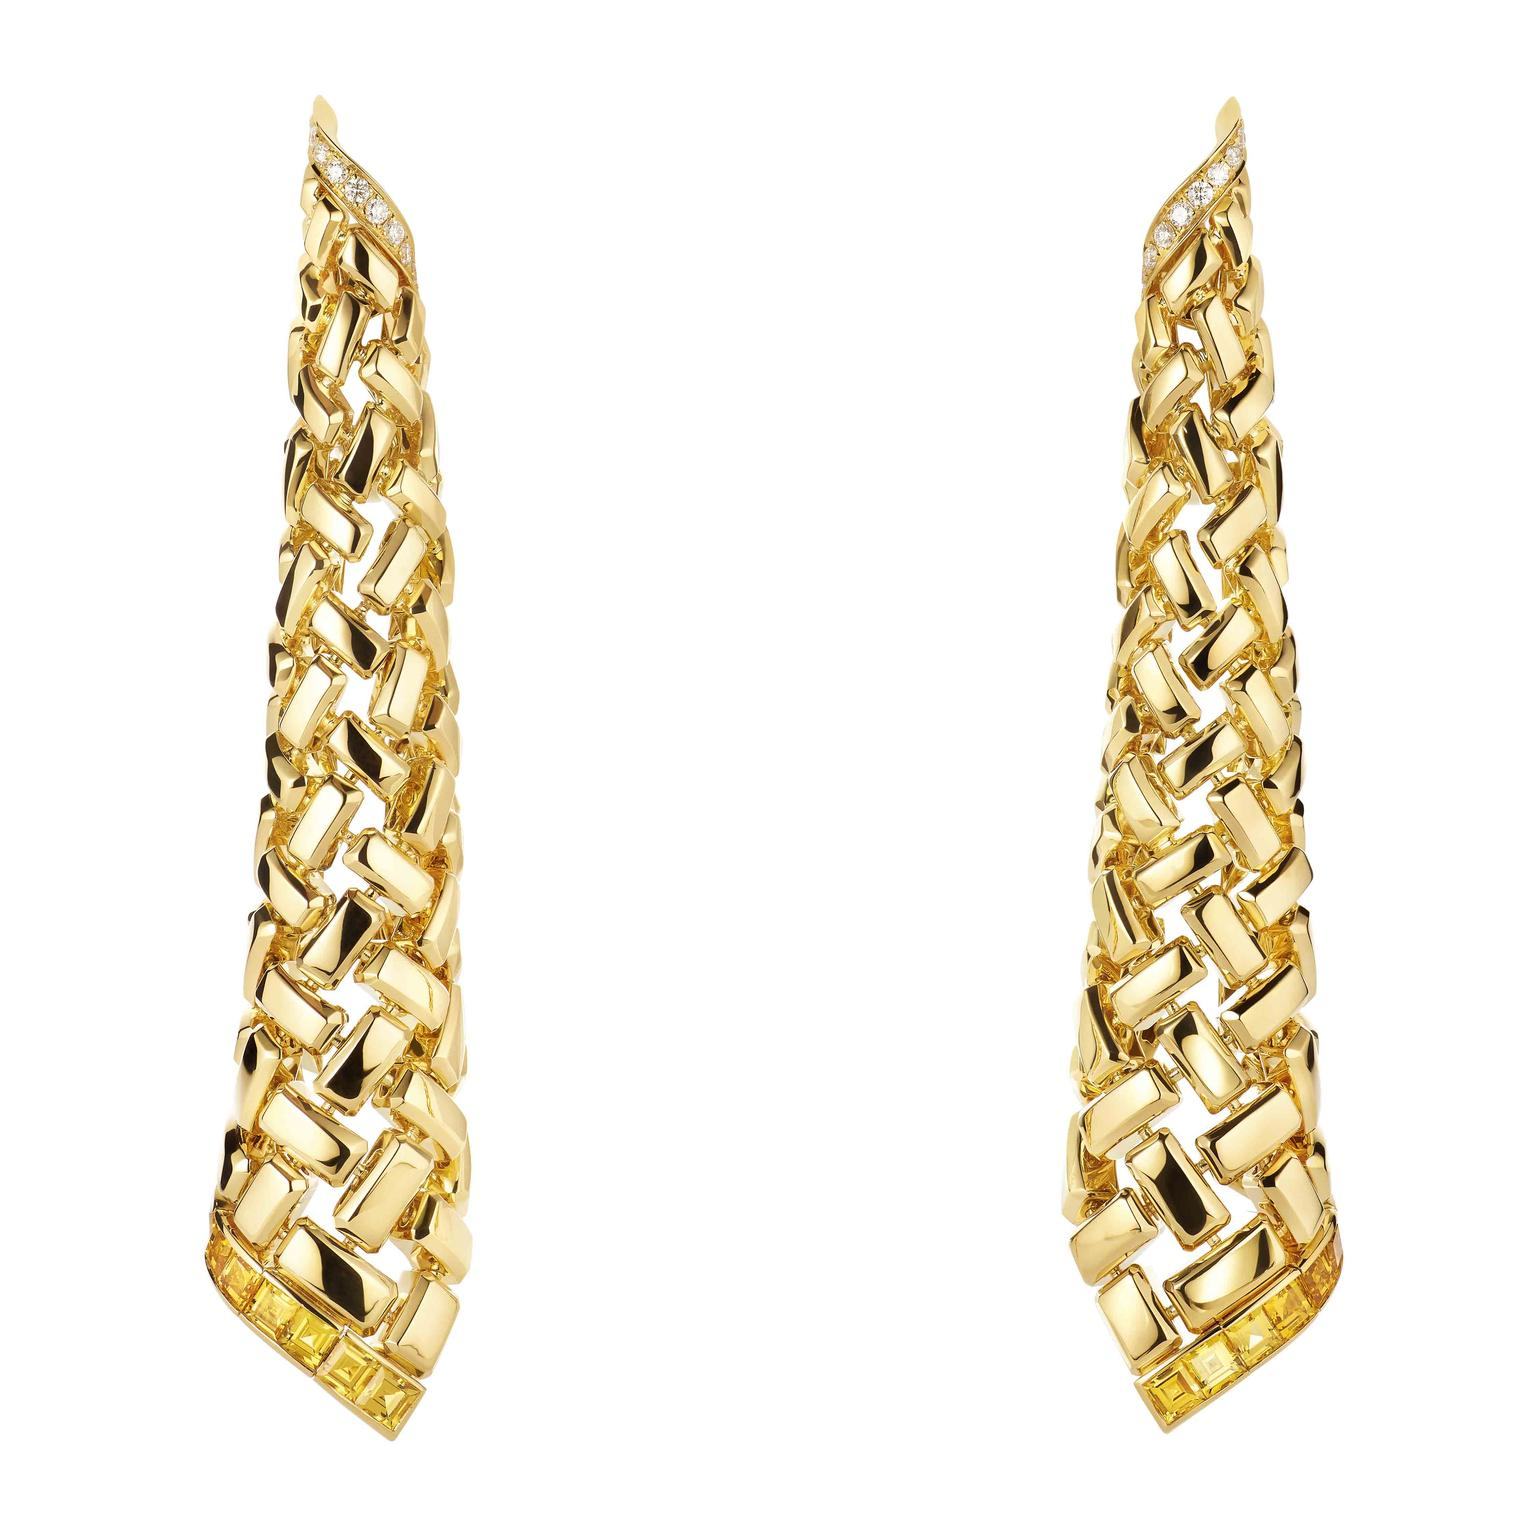 Chaumet Earrings on white